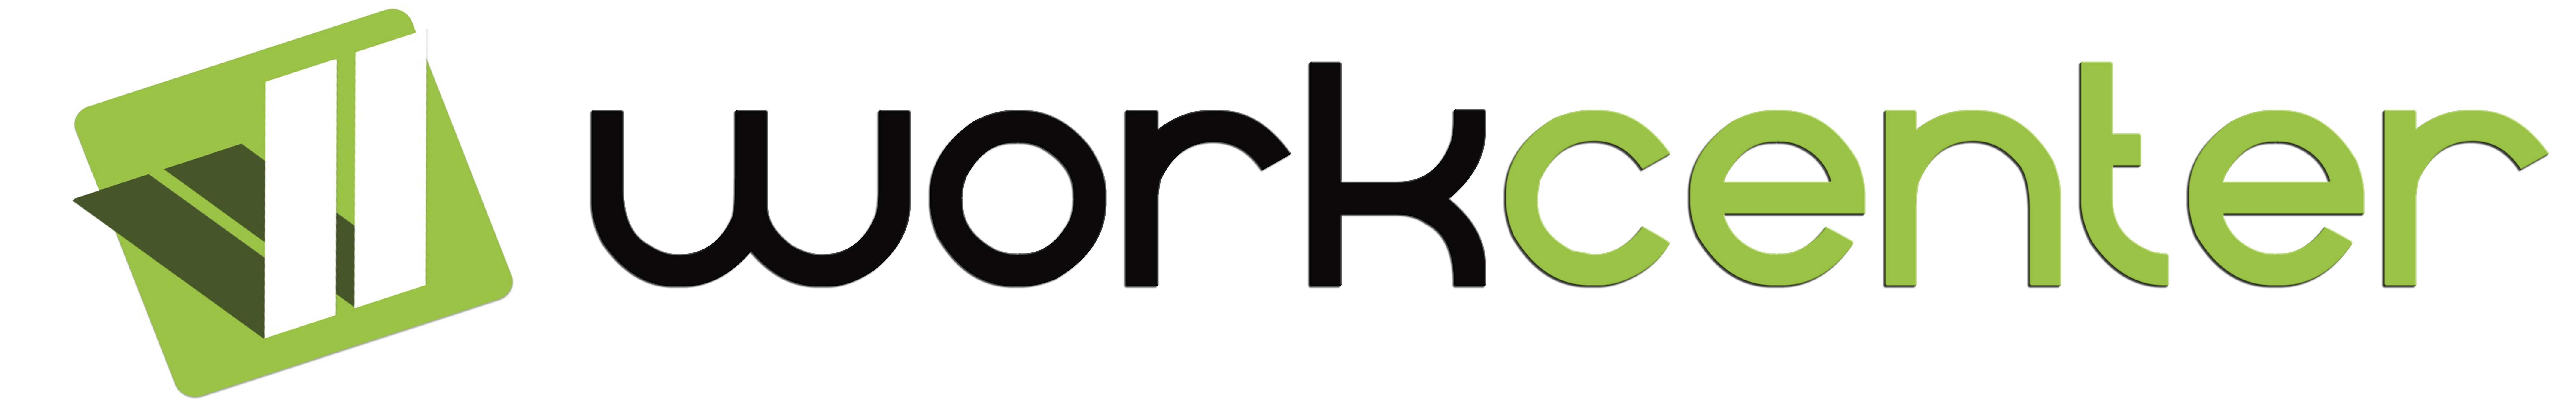 workcenter-logo